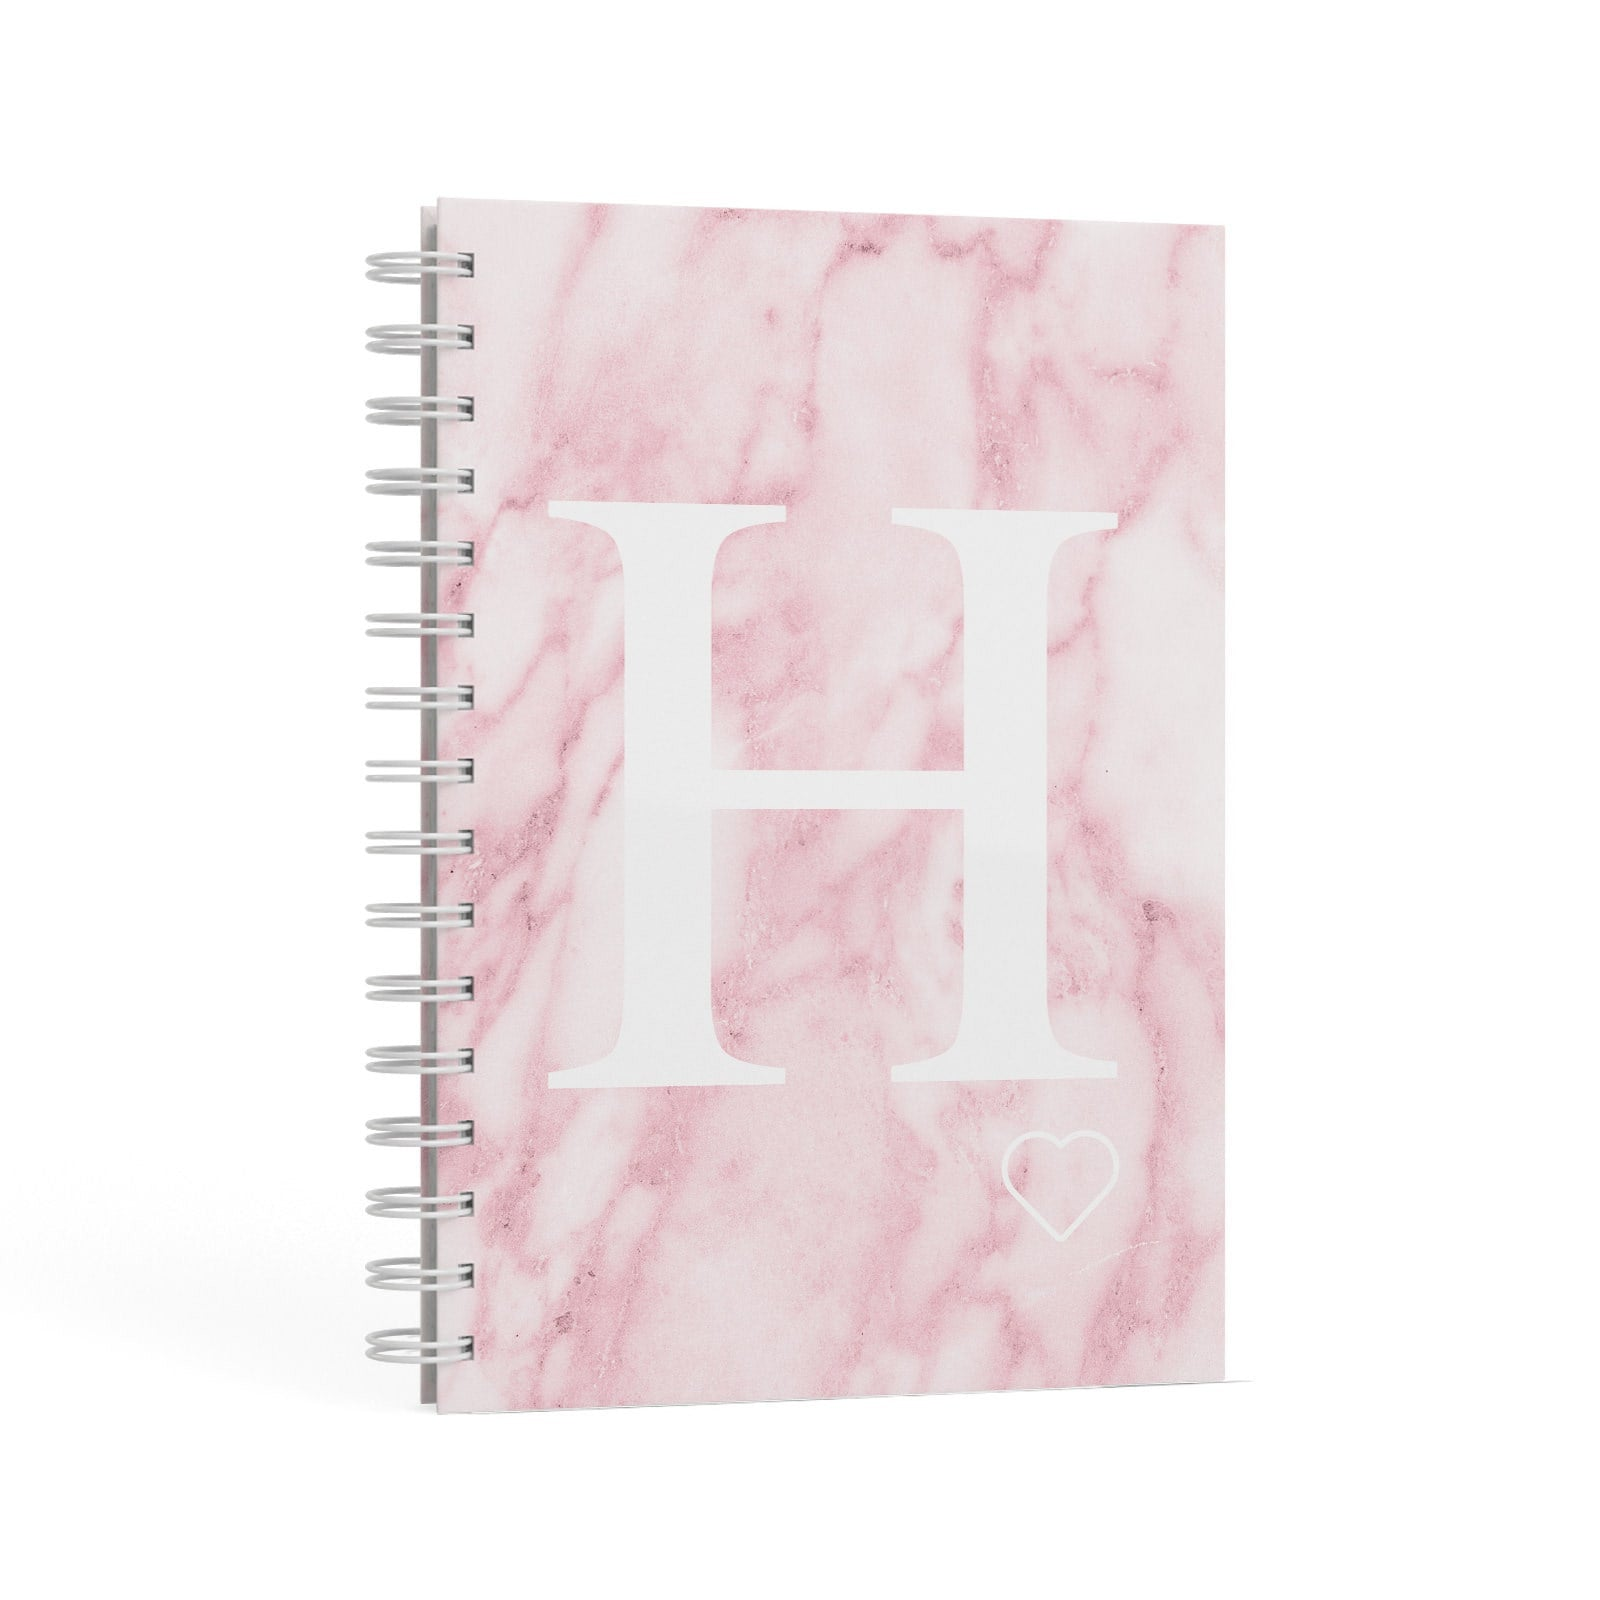 Blush Marble Custom Initial Personalised A5 Hardcover Notebook Second Side View